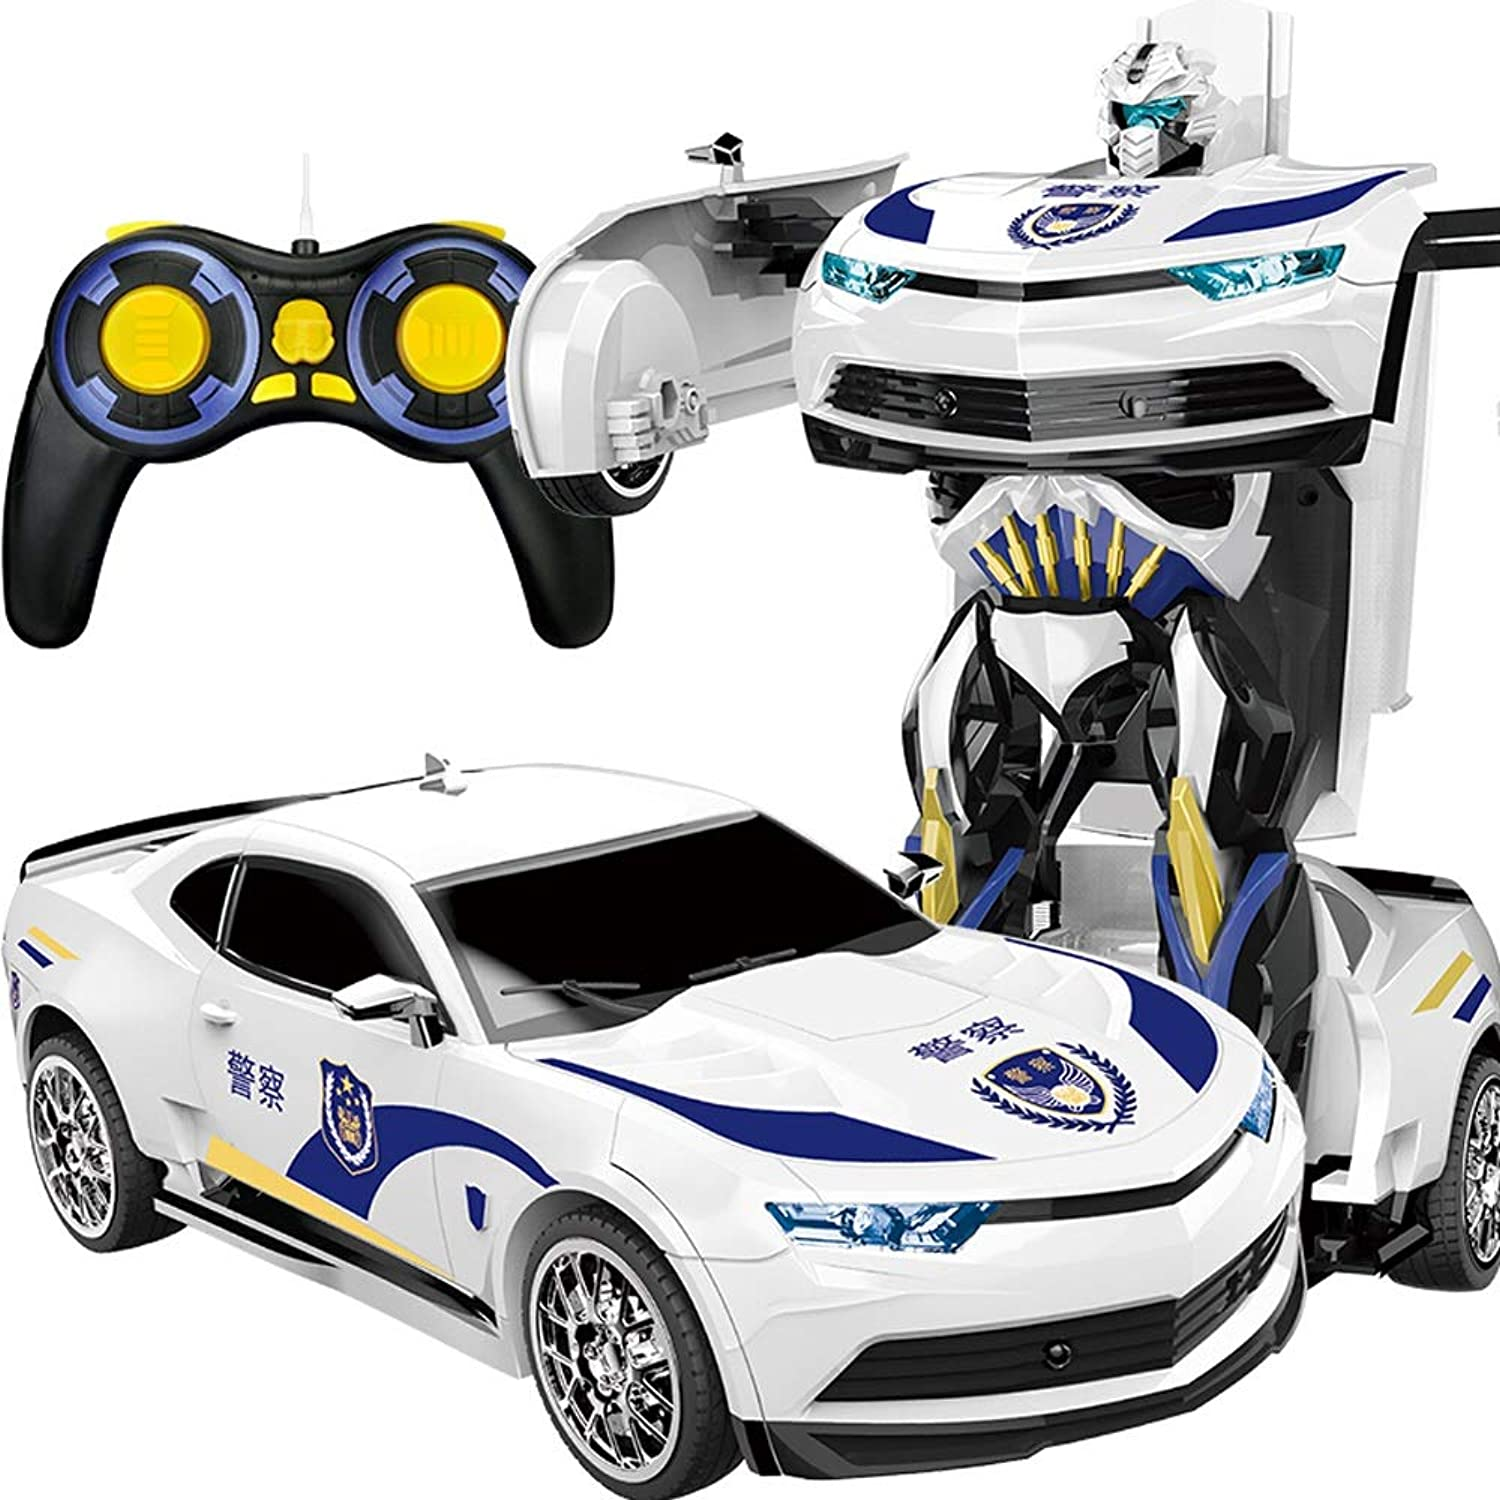 Kikioo Huge 1 12 Rechargeable Dual Mode One Touch Transform Remote Control Police Car Transformer Robot Sound and Light RC 360° redation Stunt Cars Electronic Kids Toys Tools for Boys Girls White